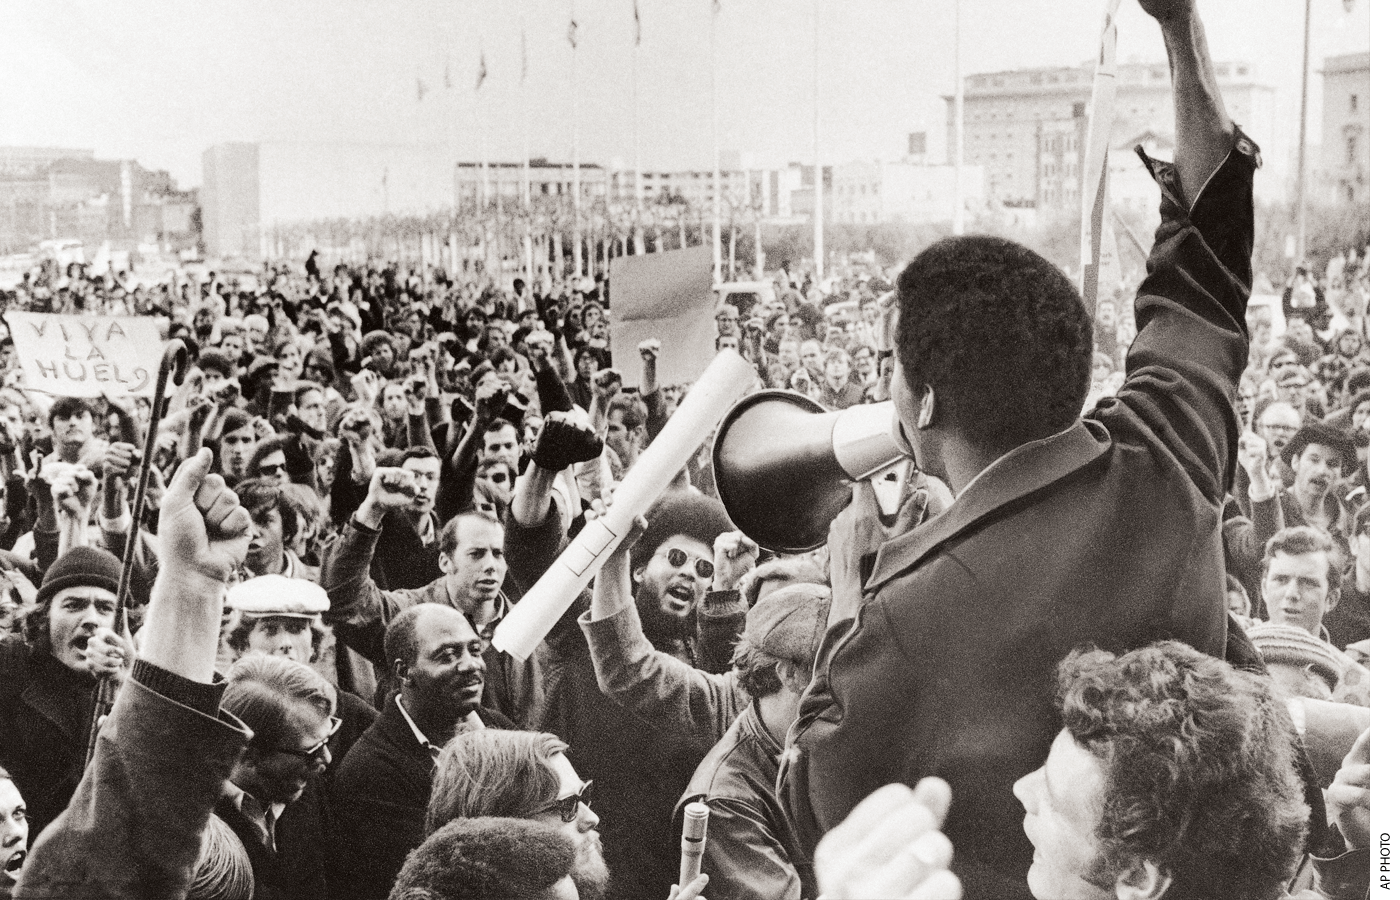 A Black Students Union leader in front of a crowd of demonstrators at College in December 1968.